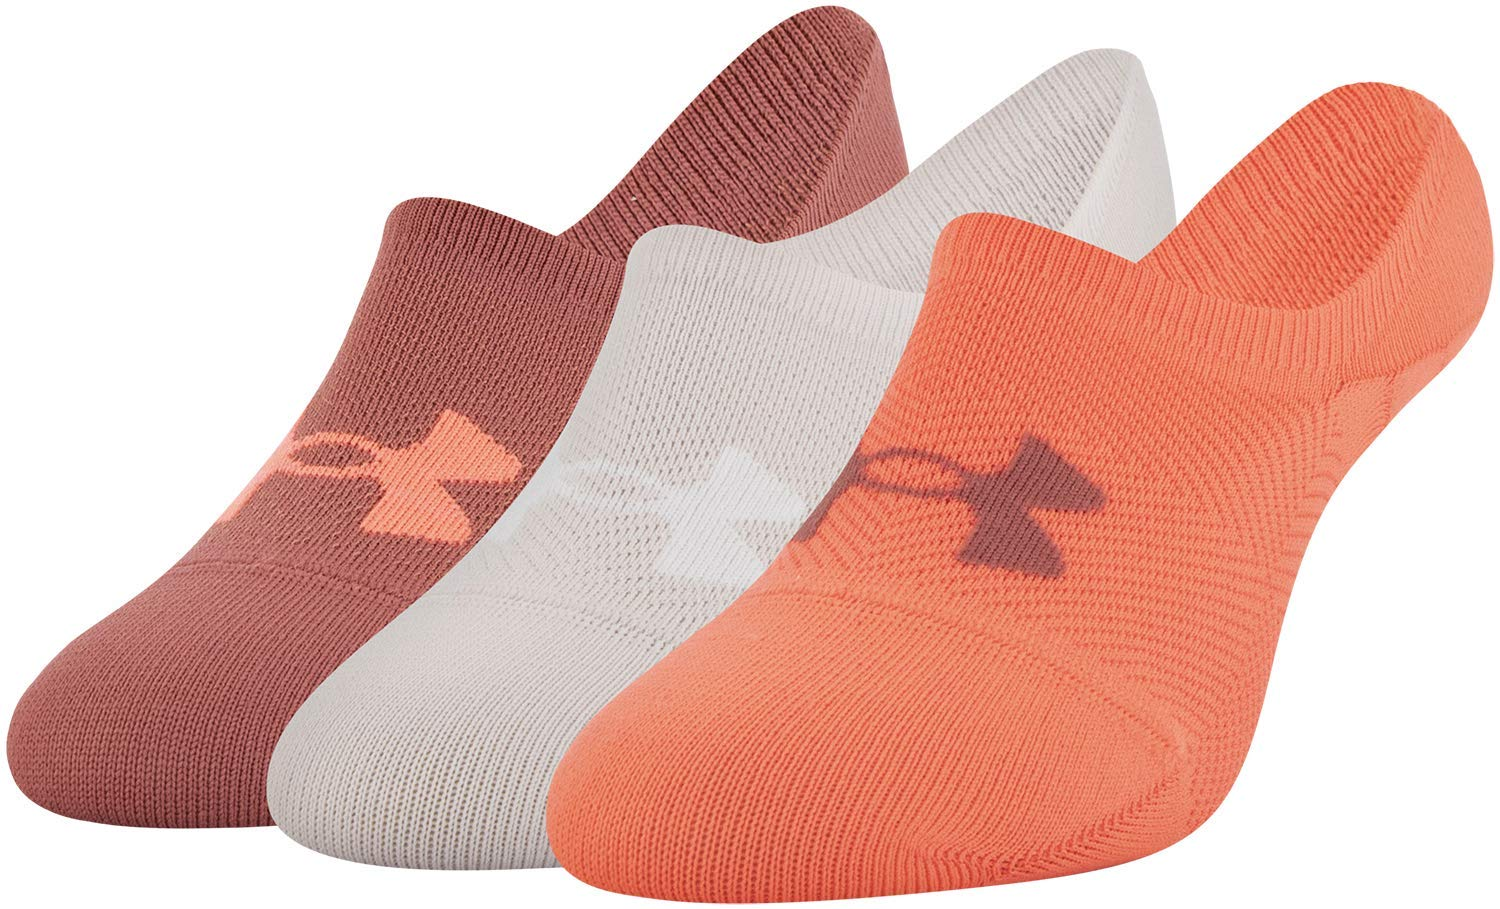 Under Armour Essential Ultra Lo Socks, 3-Pair, Peach Plasma Assorted, Shoe Size: Womens 6-9 by Under Armour